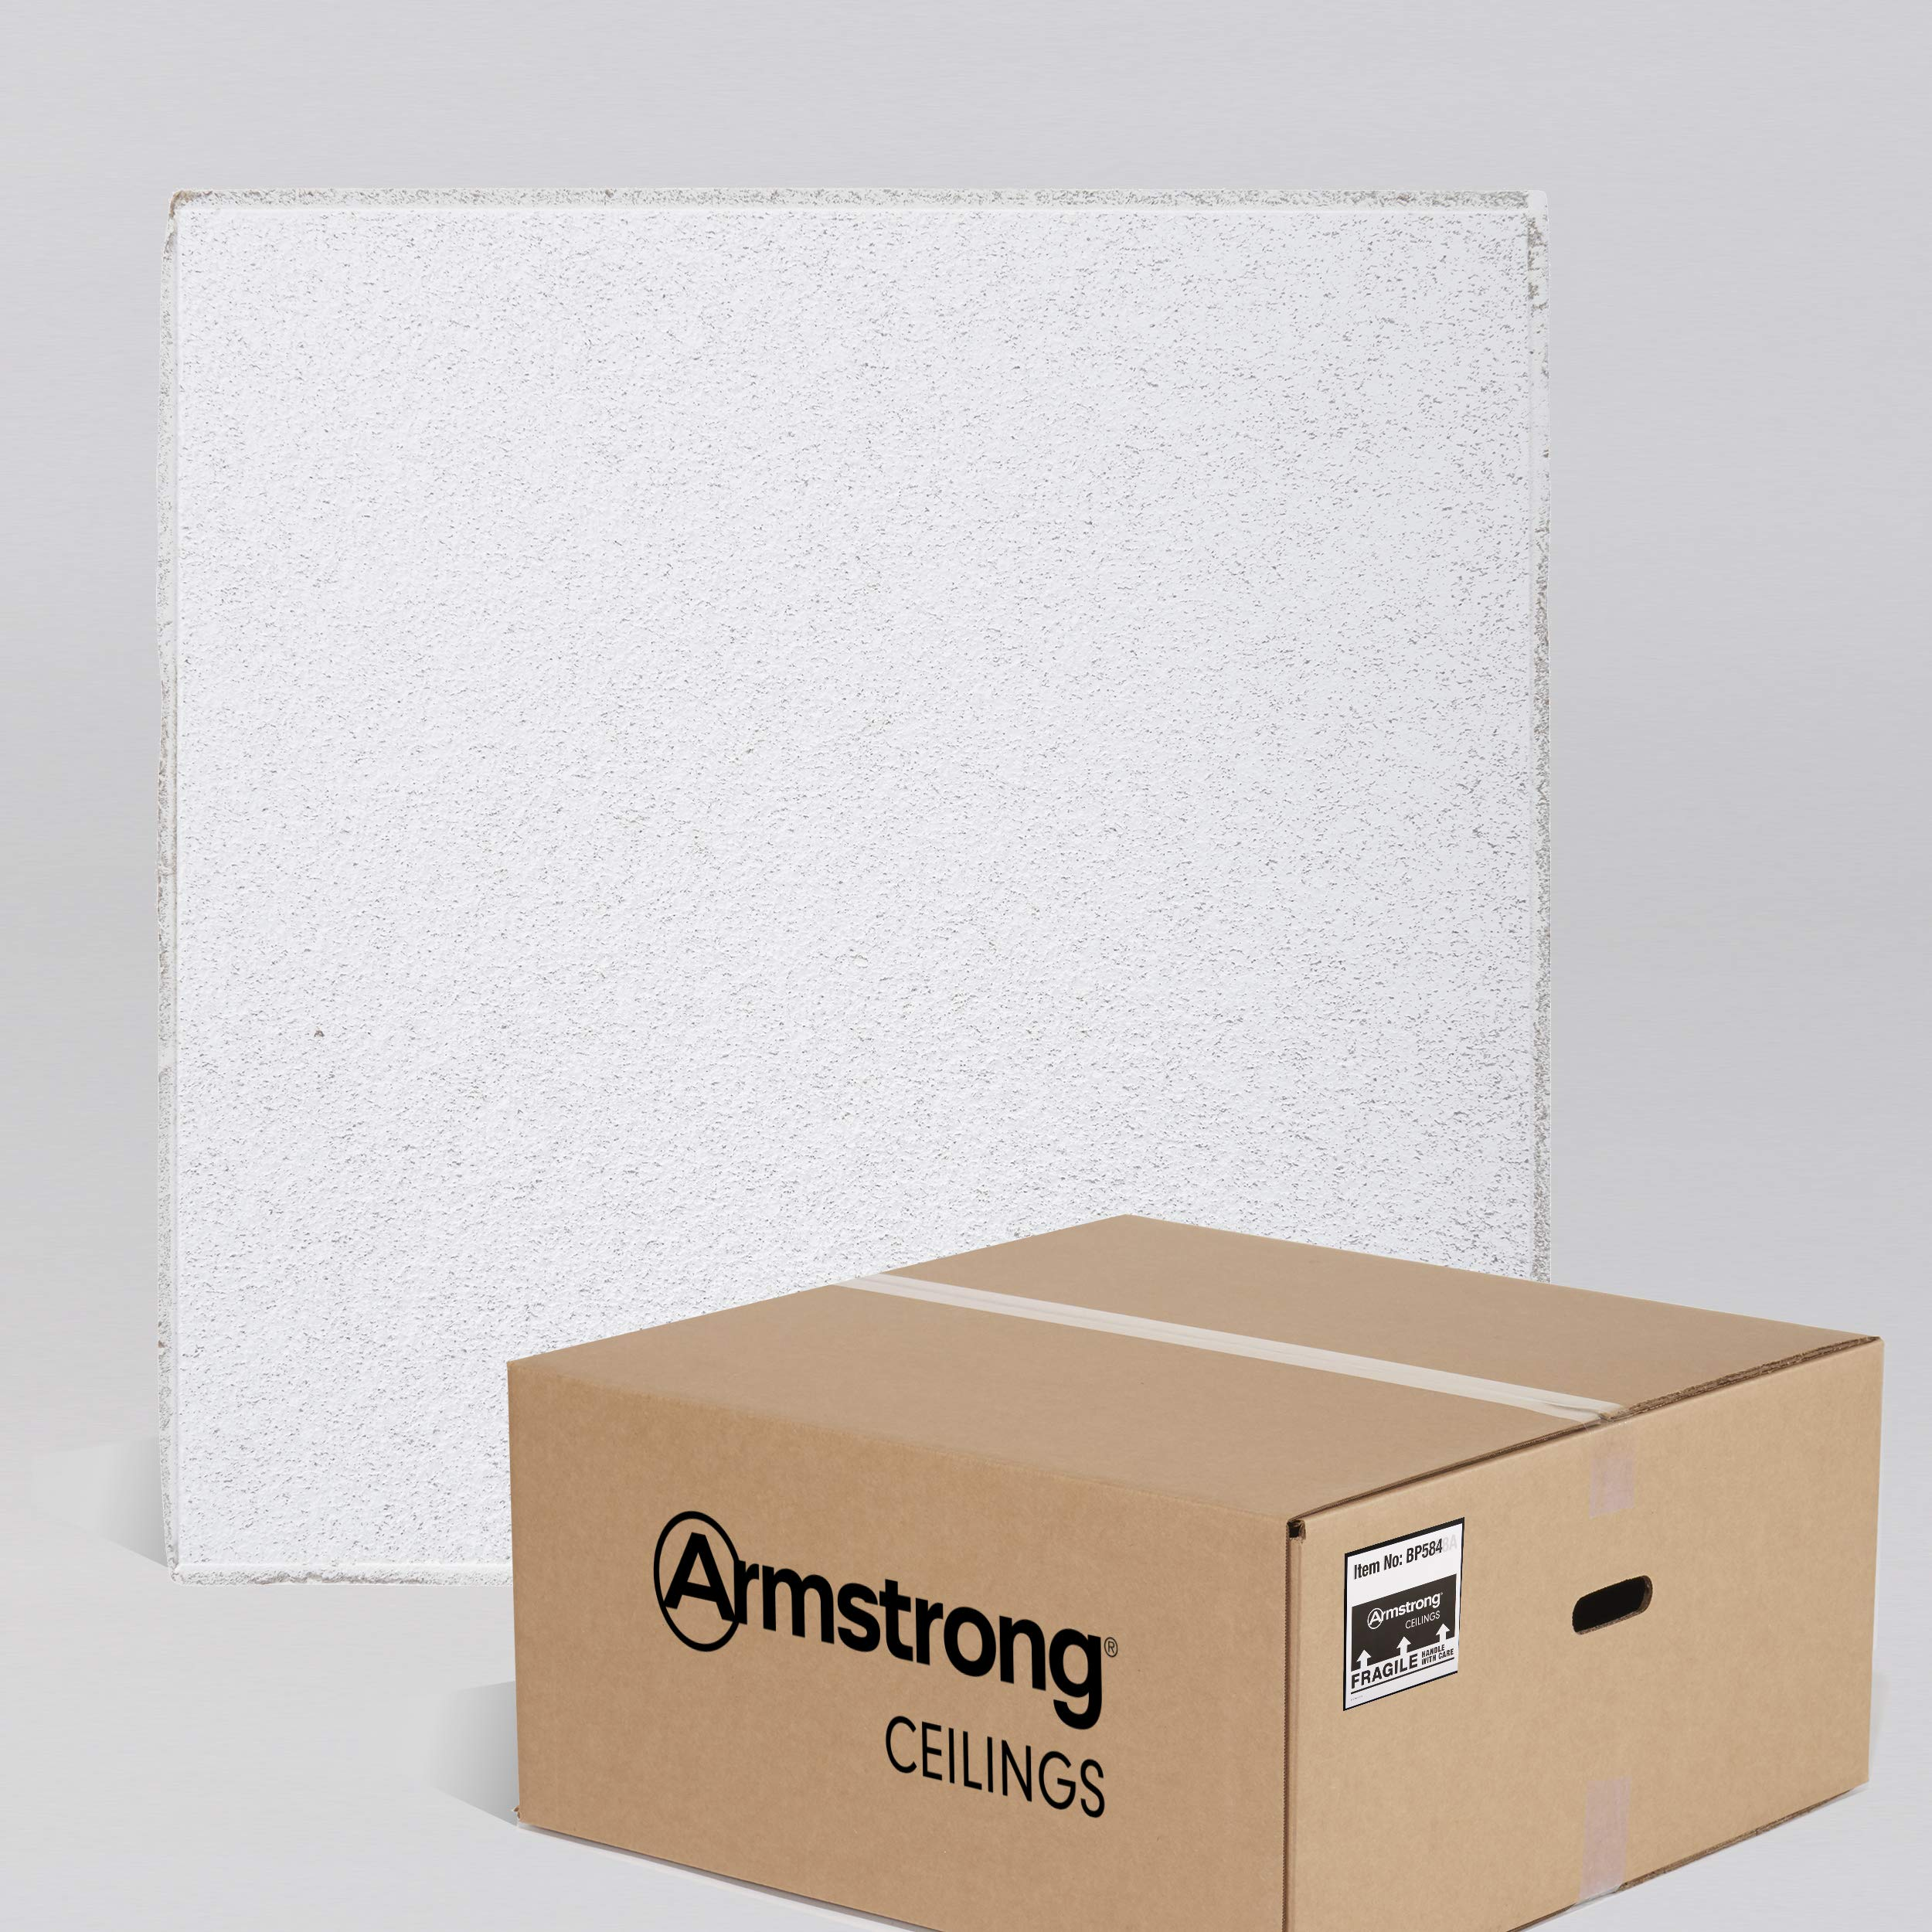 Armstrong Ceiling Tiles; 2x2 Ceiling Tiles - HUMIGUARD Plus Acoustic Ceilings for Suspended Ceiling Grid; Drop Ceiling Tiles Direct from the Manufacturer; CIRRUS Item 584 - 12 pcs White Tegular